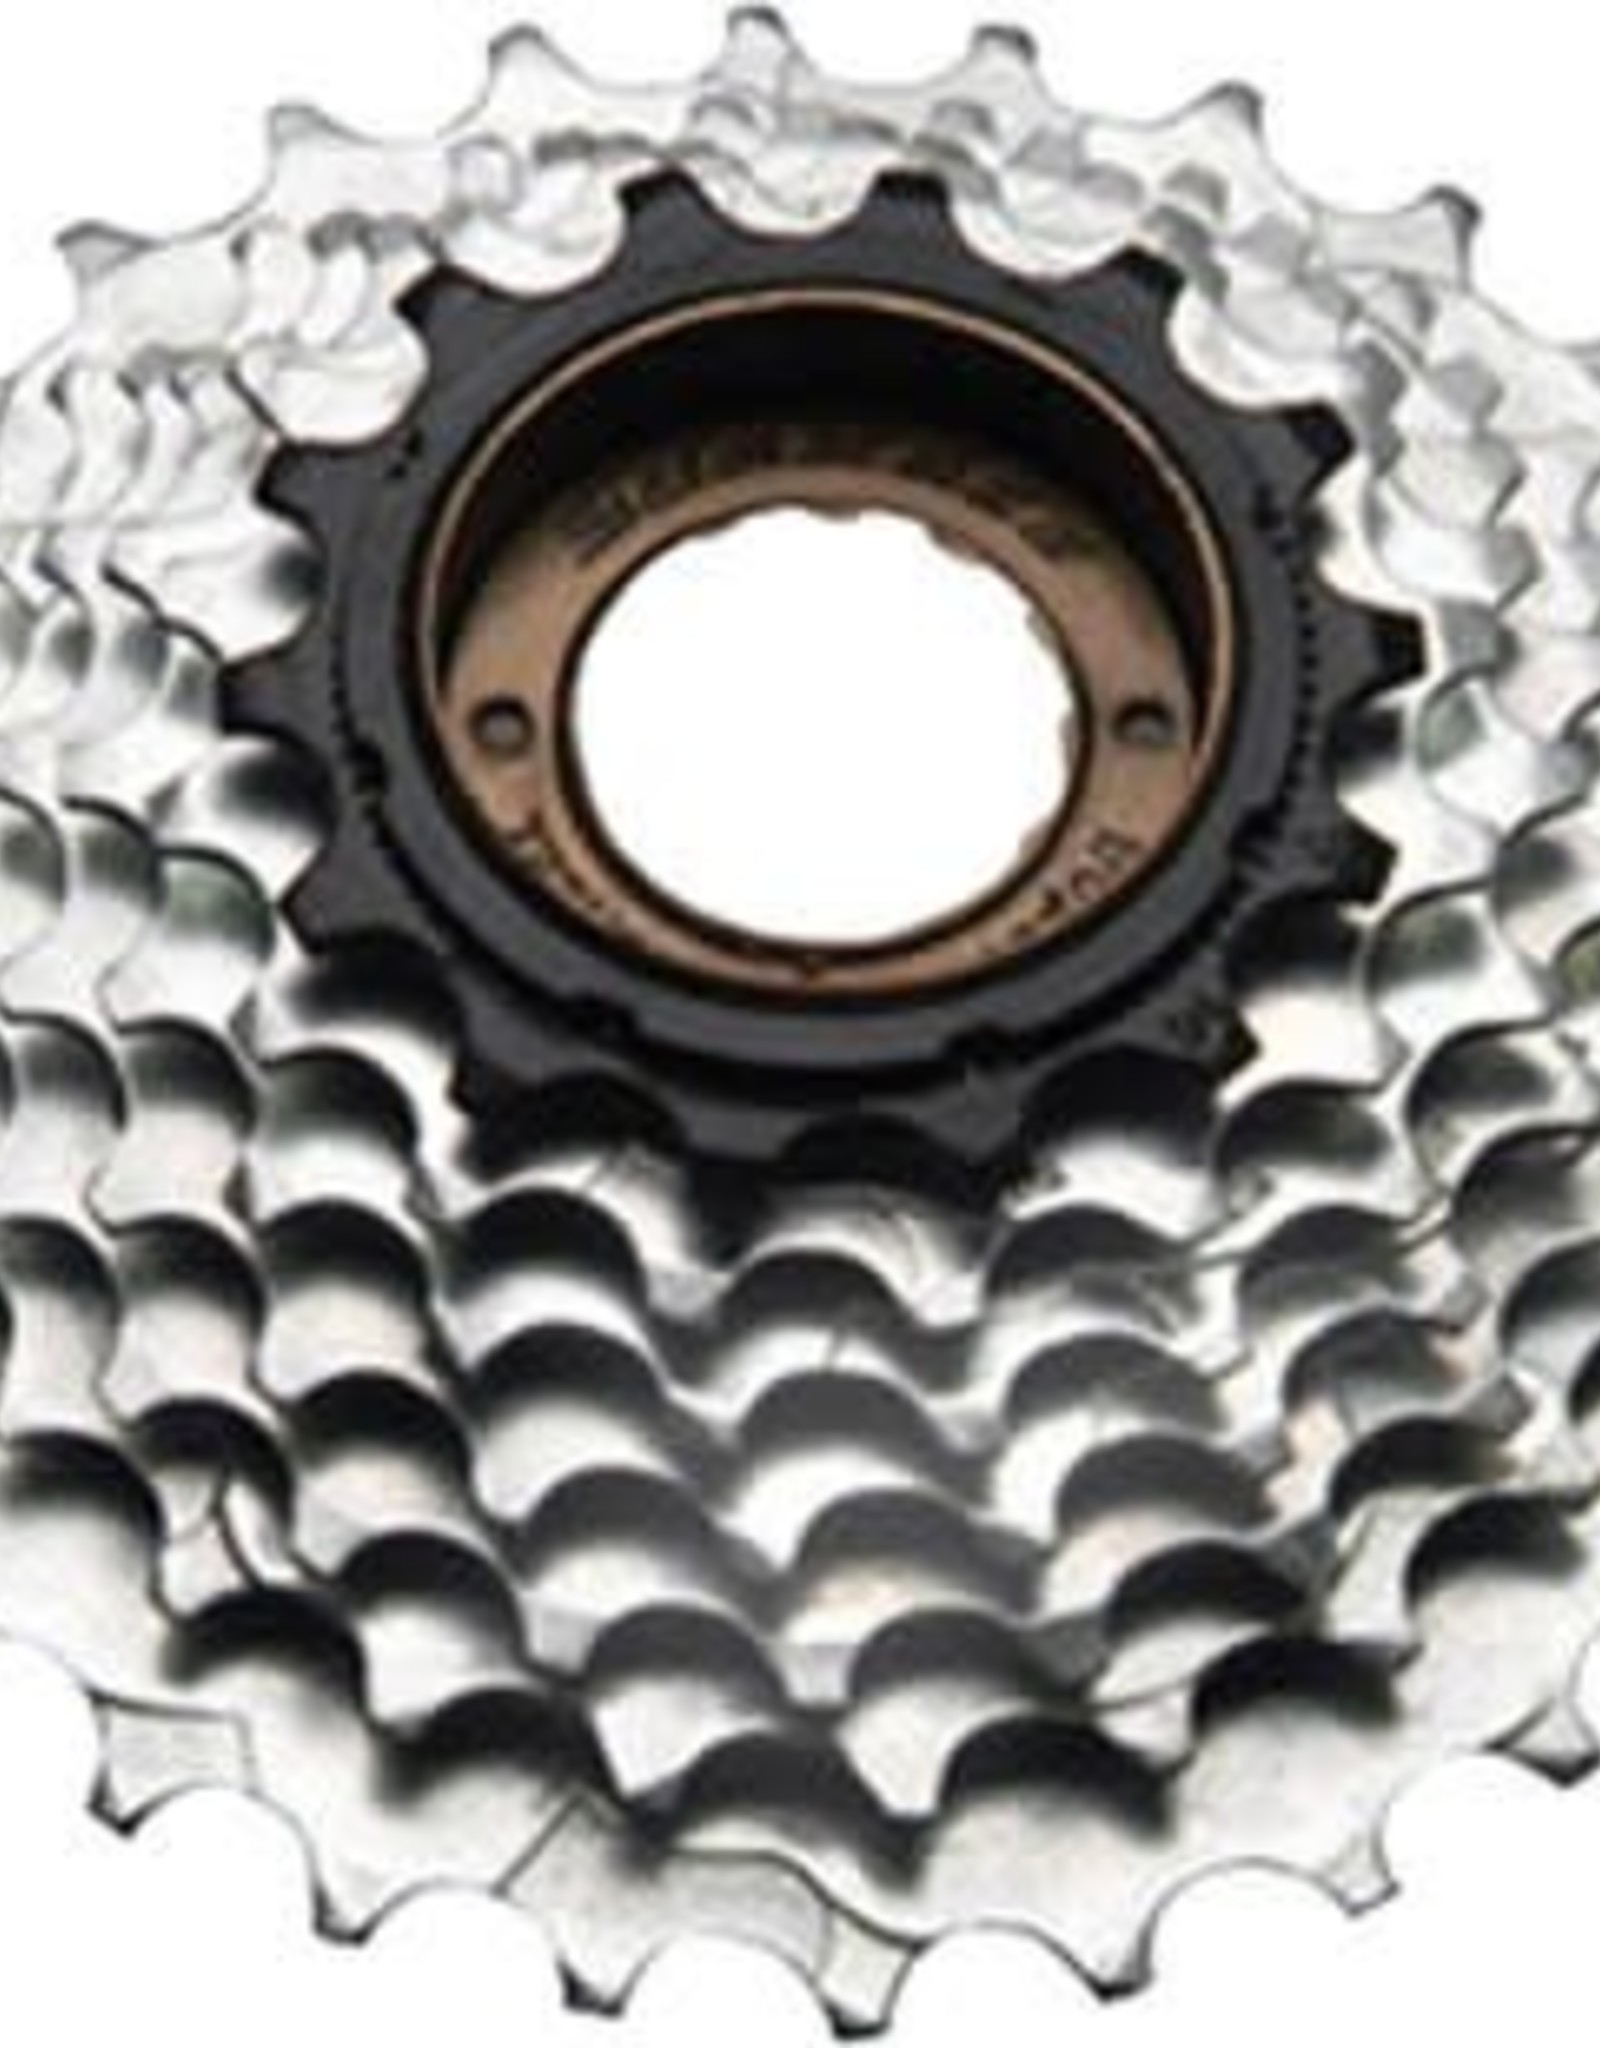 SunRace SunRace M2A 5-speed 14-28 Freewheel Black/Zinc28